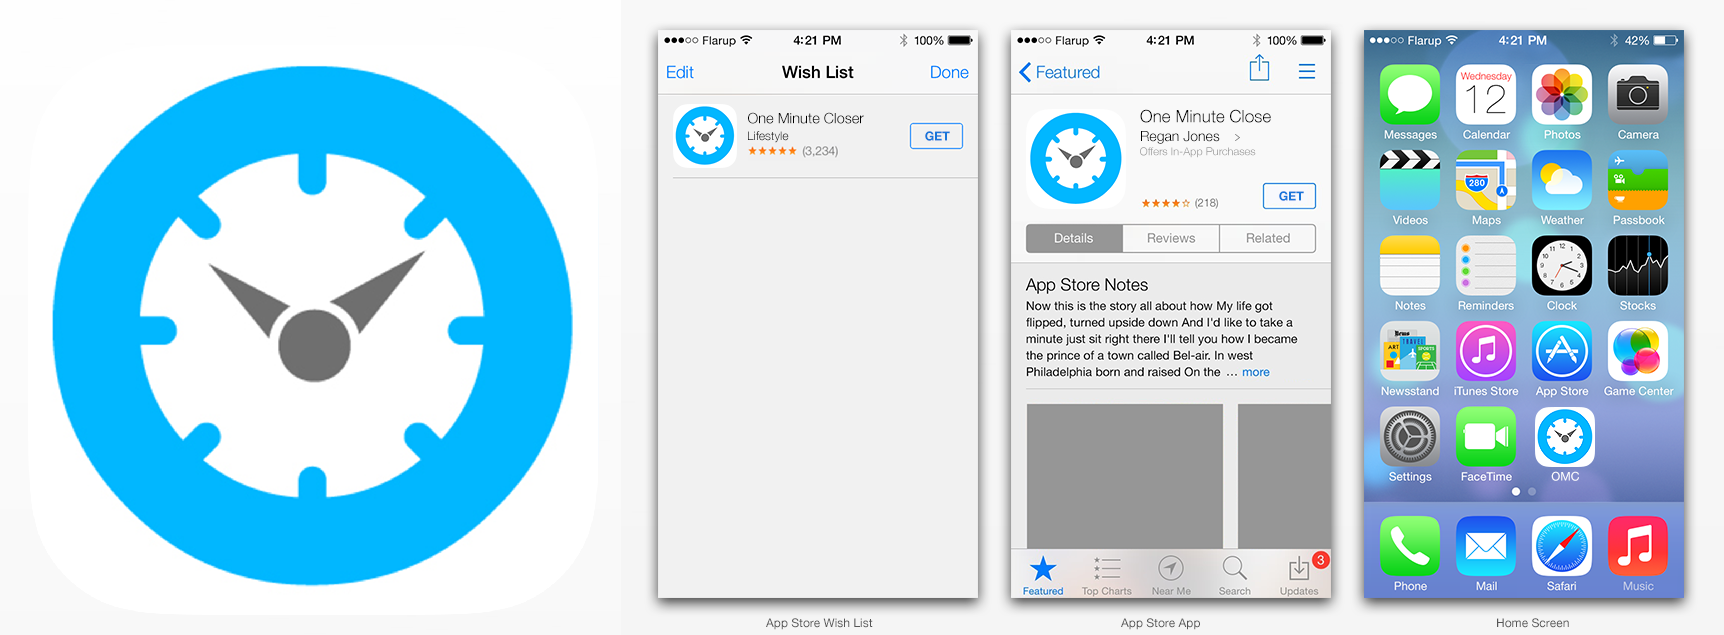 One Minute Closer App Icon